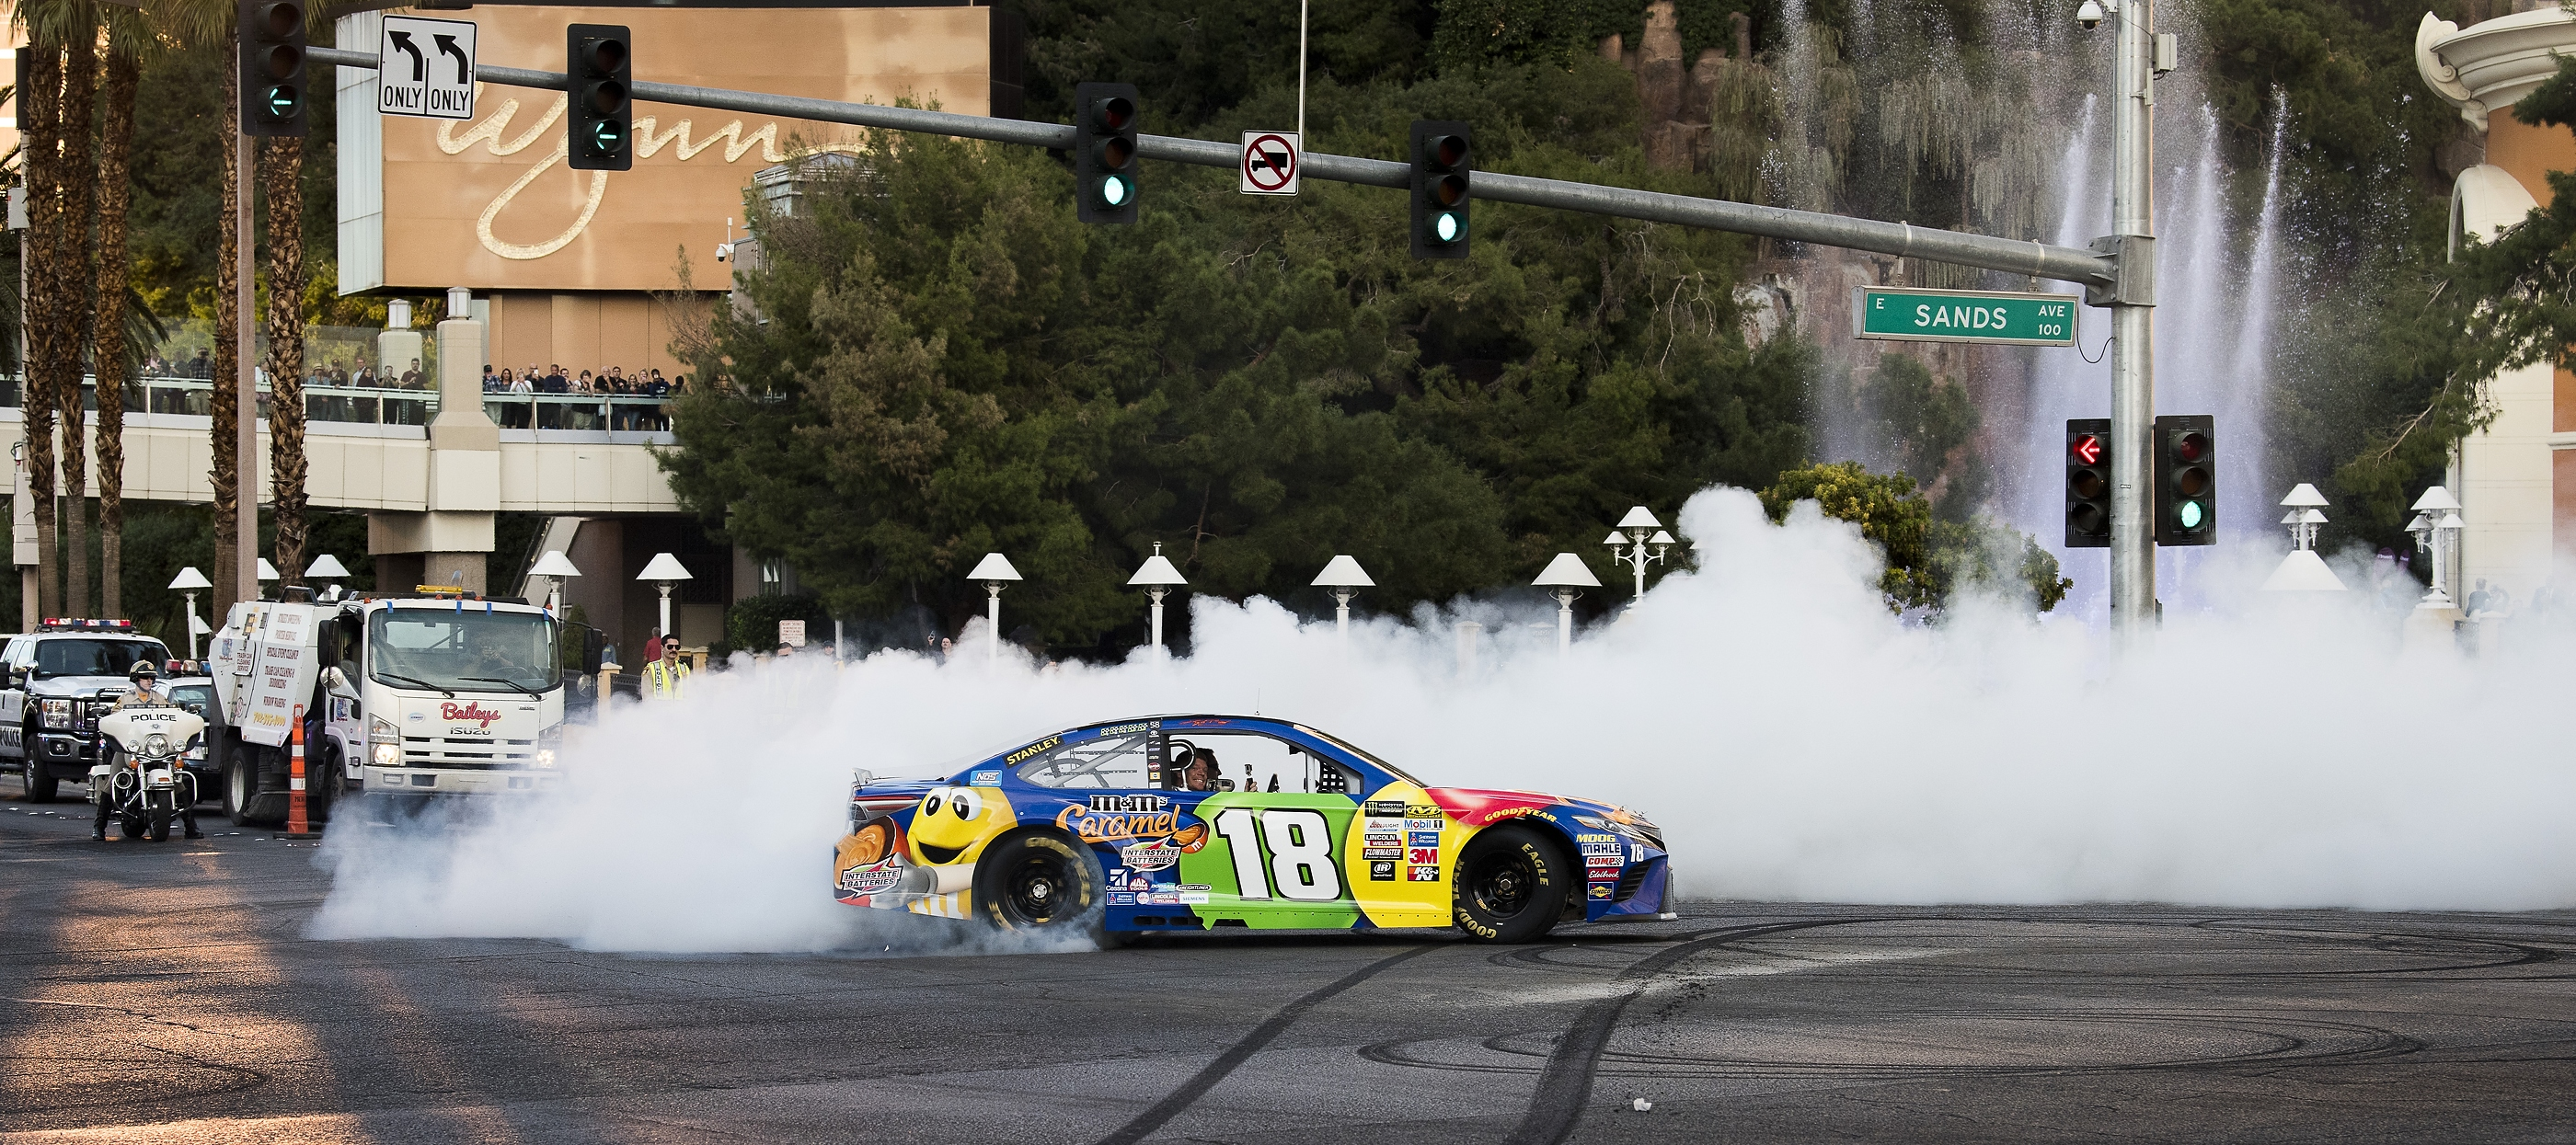 Las Vegan Kyle Busch spins out in his #18 M&M's Caramel Toyota Camry at the NASCAR Victory Lap on the Las Vegas Strip at the intersection of Las Vegas Blvd. and Spring  Mountain Road on Wednesday, Nov. 29, 2017. CREDIT: Mark Damon/Las Vegas News Bureau